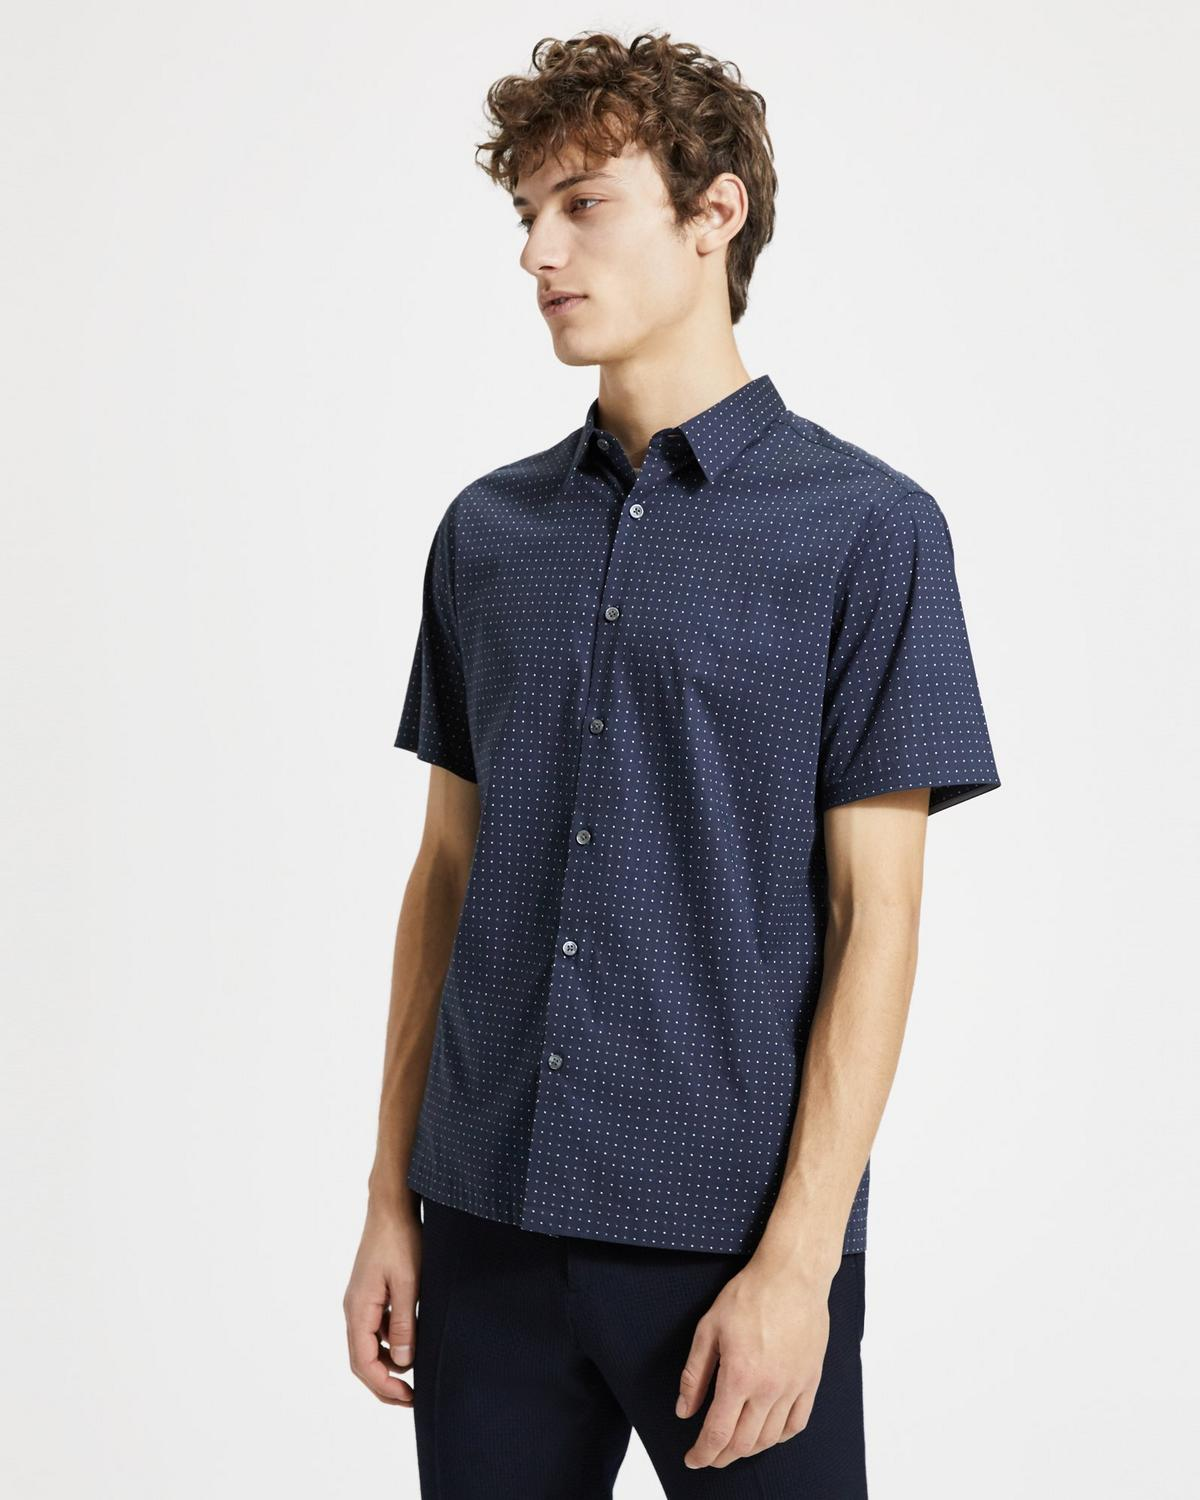 Sphere Print Irving Shirt